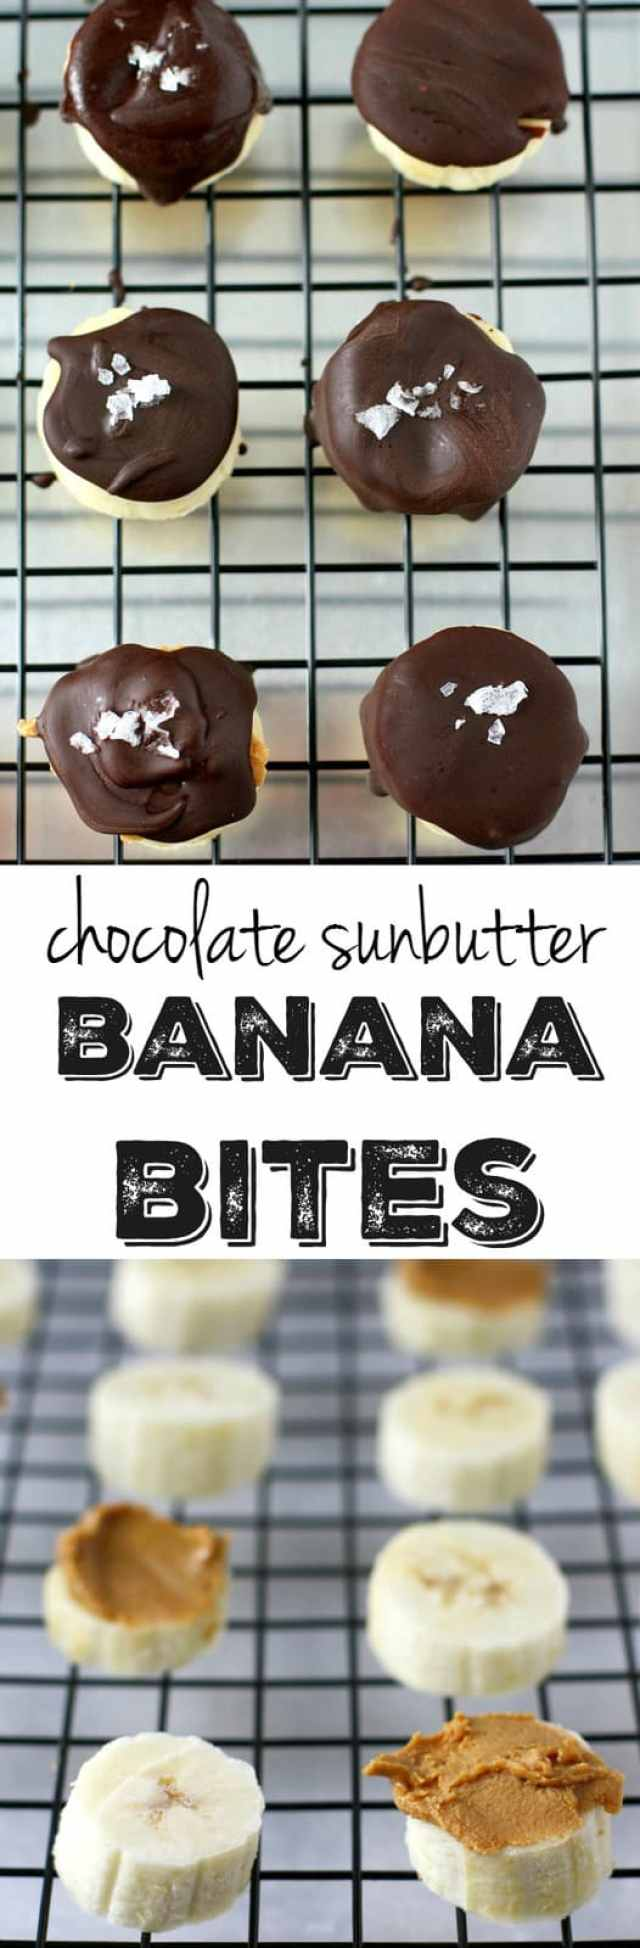 So easy! Banana slices are topped with sunbutter, chocolate, and a sprinkle of sea salt, then are frozen for a a healthy, delicious treat!